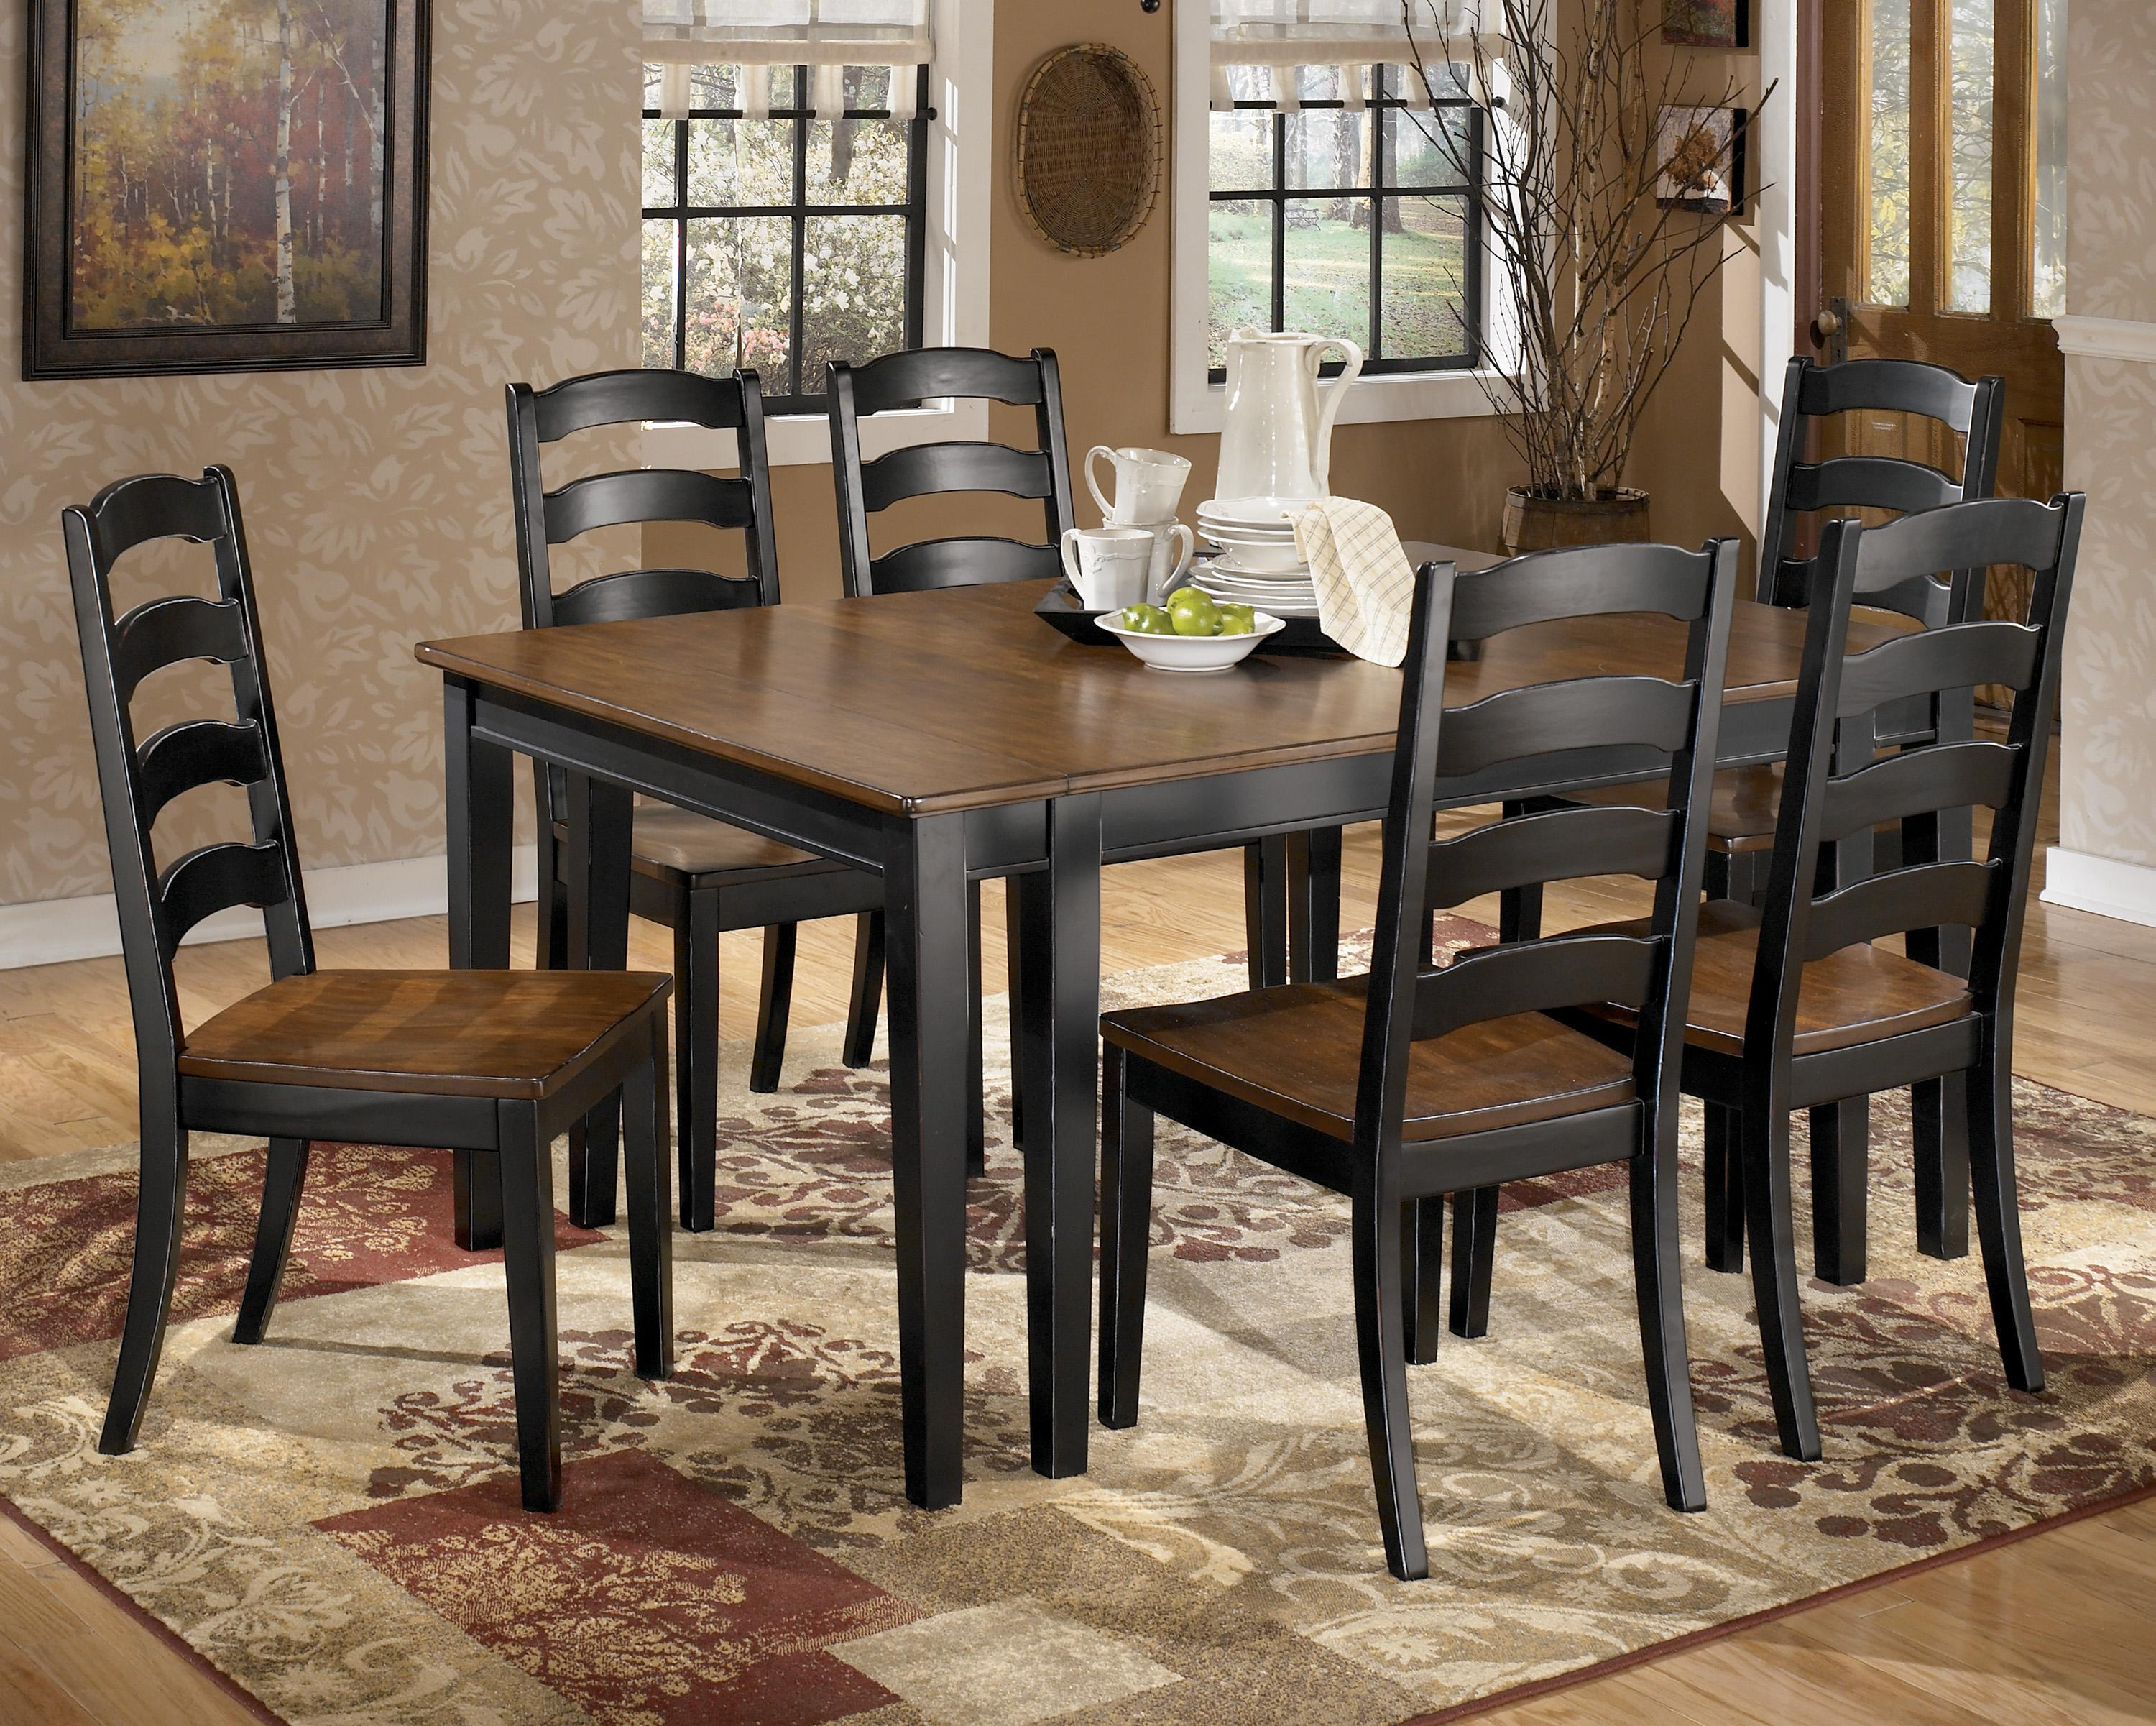 Dining room sets target homesfeed for Dining room collections